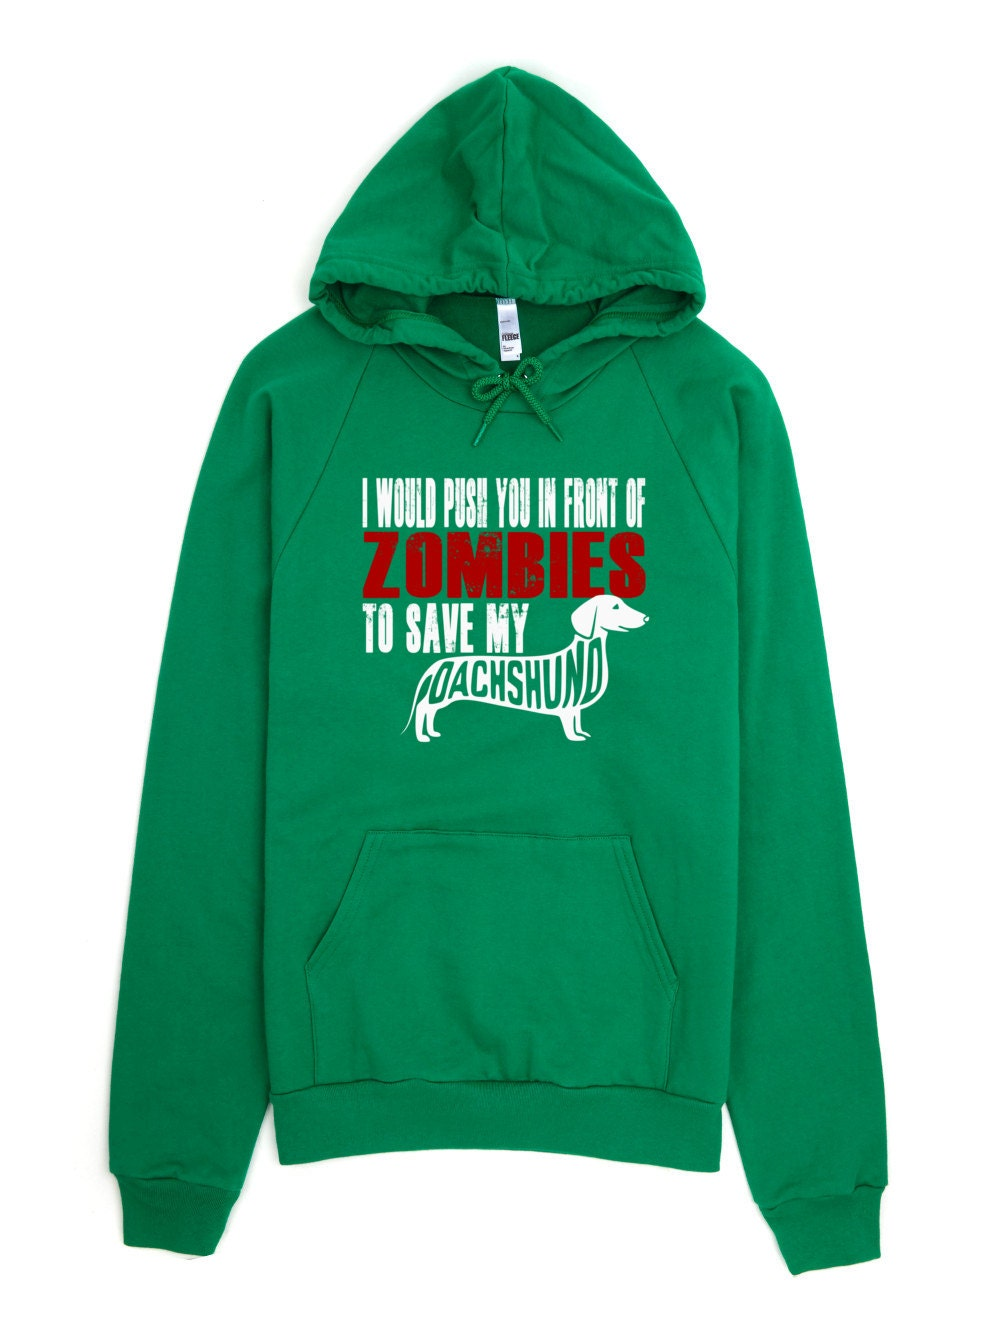 Dachshund Sweatshirt - I Would Push You In Front Of Zombies To Save My Dachshund - My Dog Dachshund Hoodie